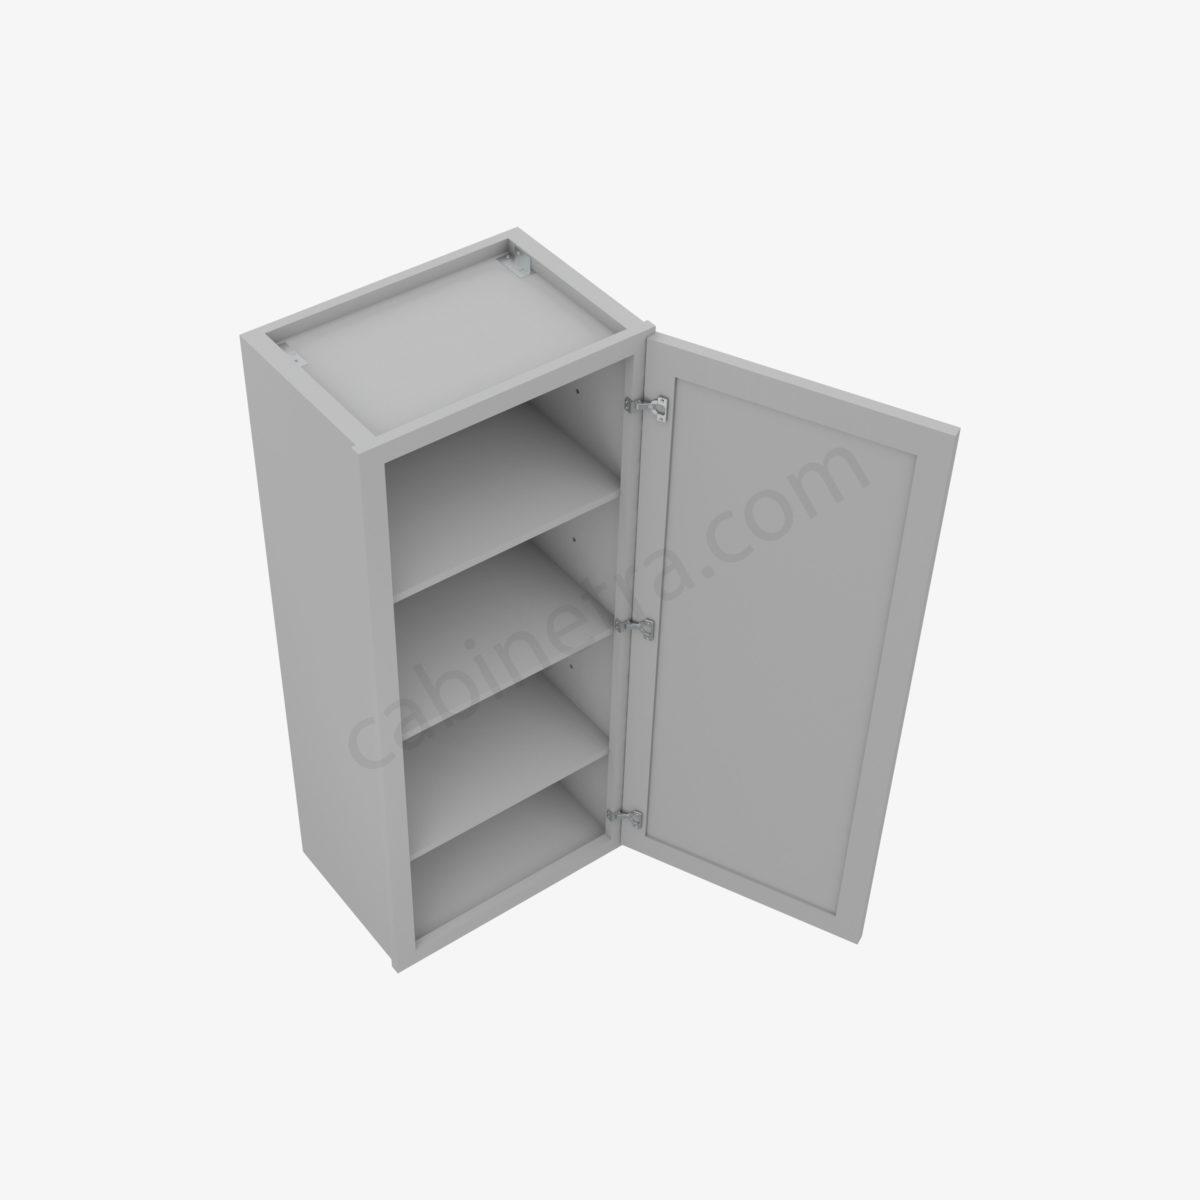 AB W1842 2 Forevermark Lait Gray Shaker Cabinetra scaled